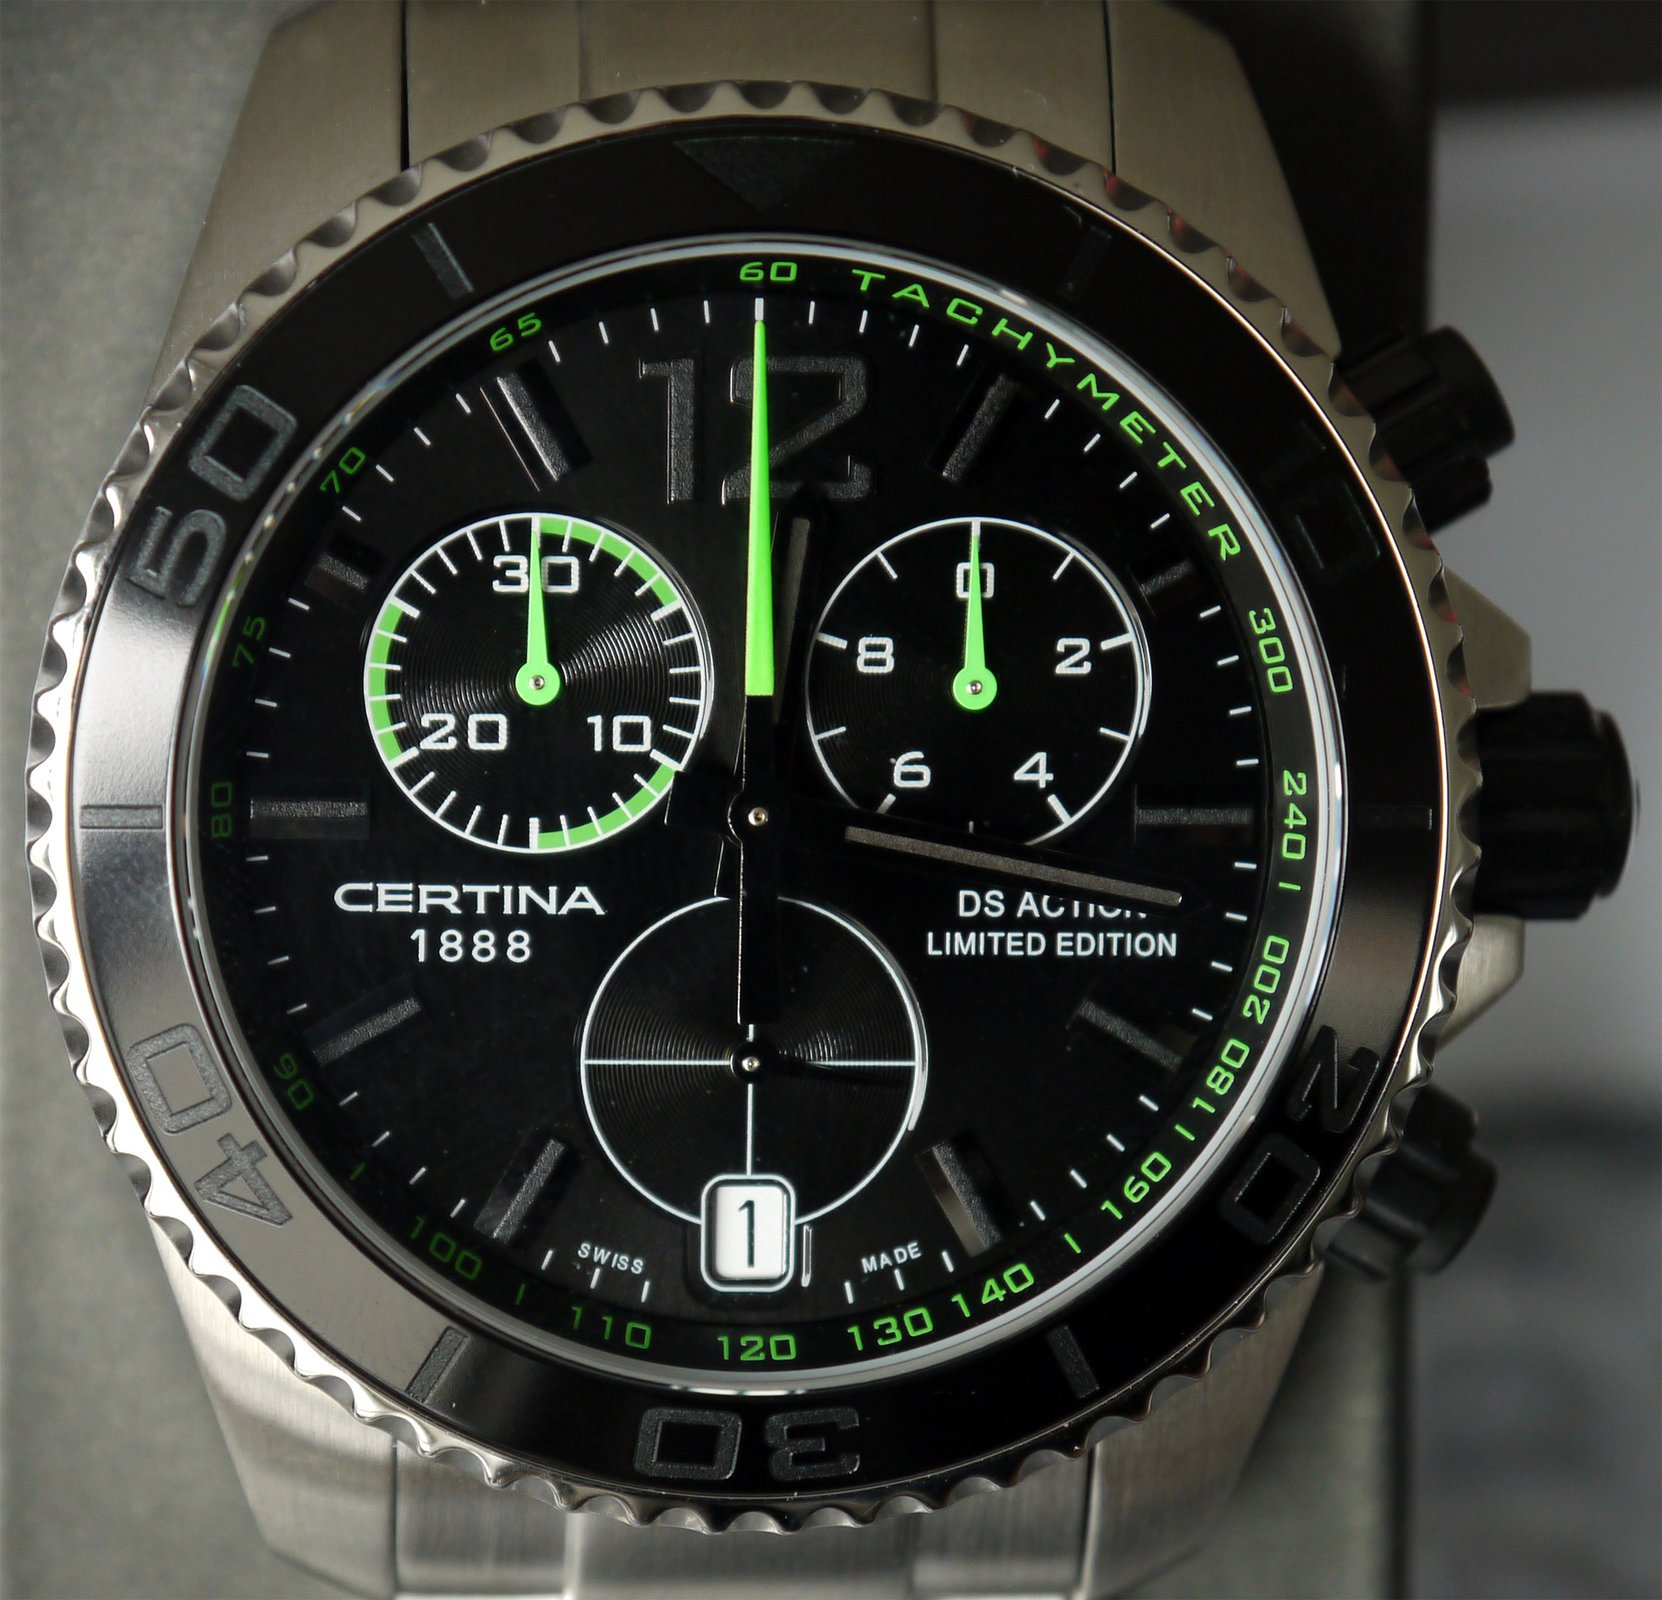 Certina Ds Action Limited Edition 7.jpg